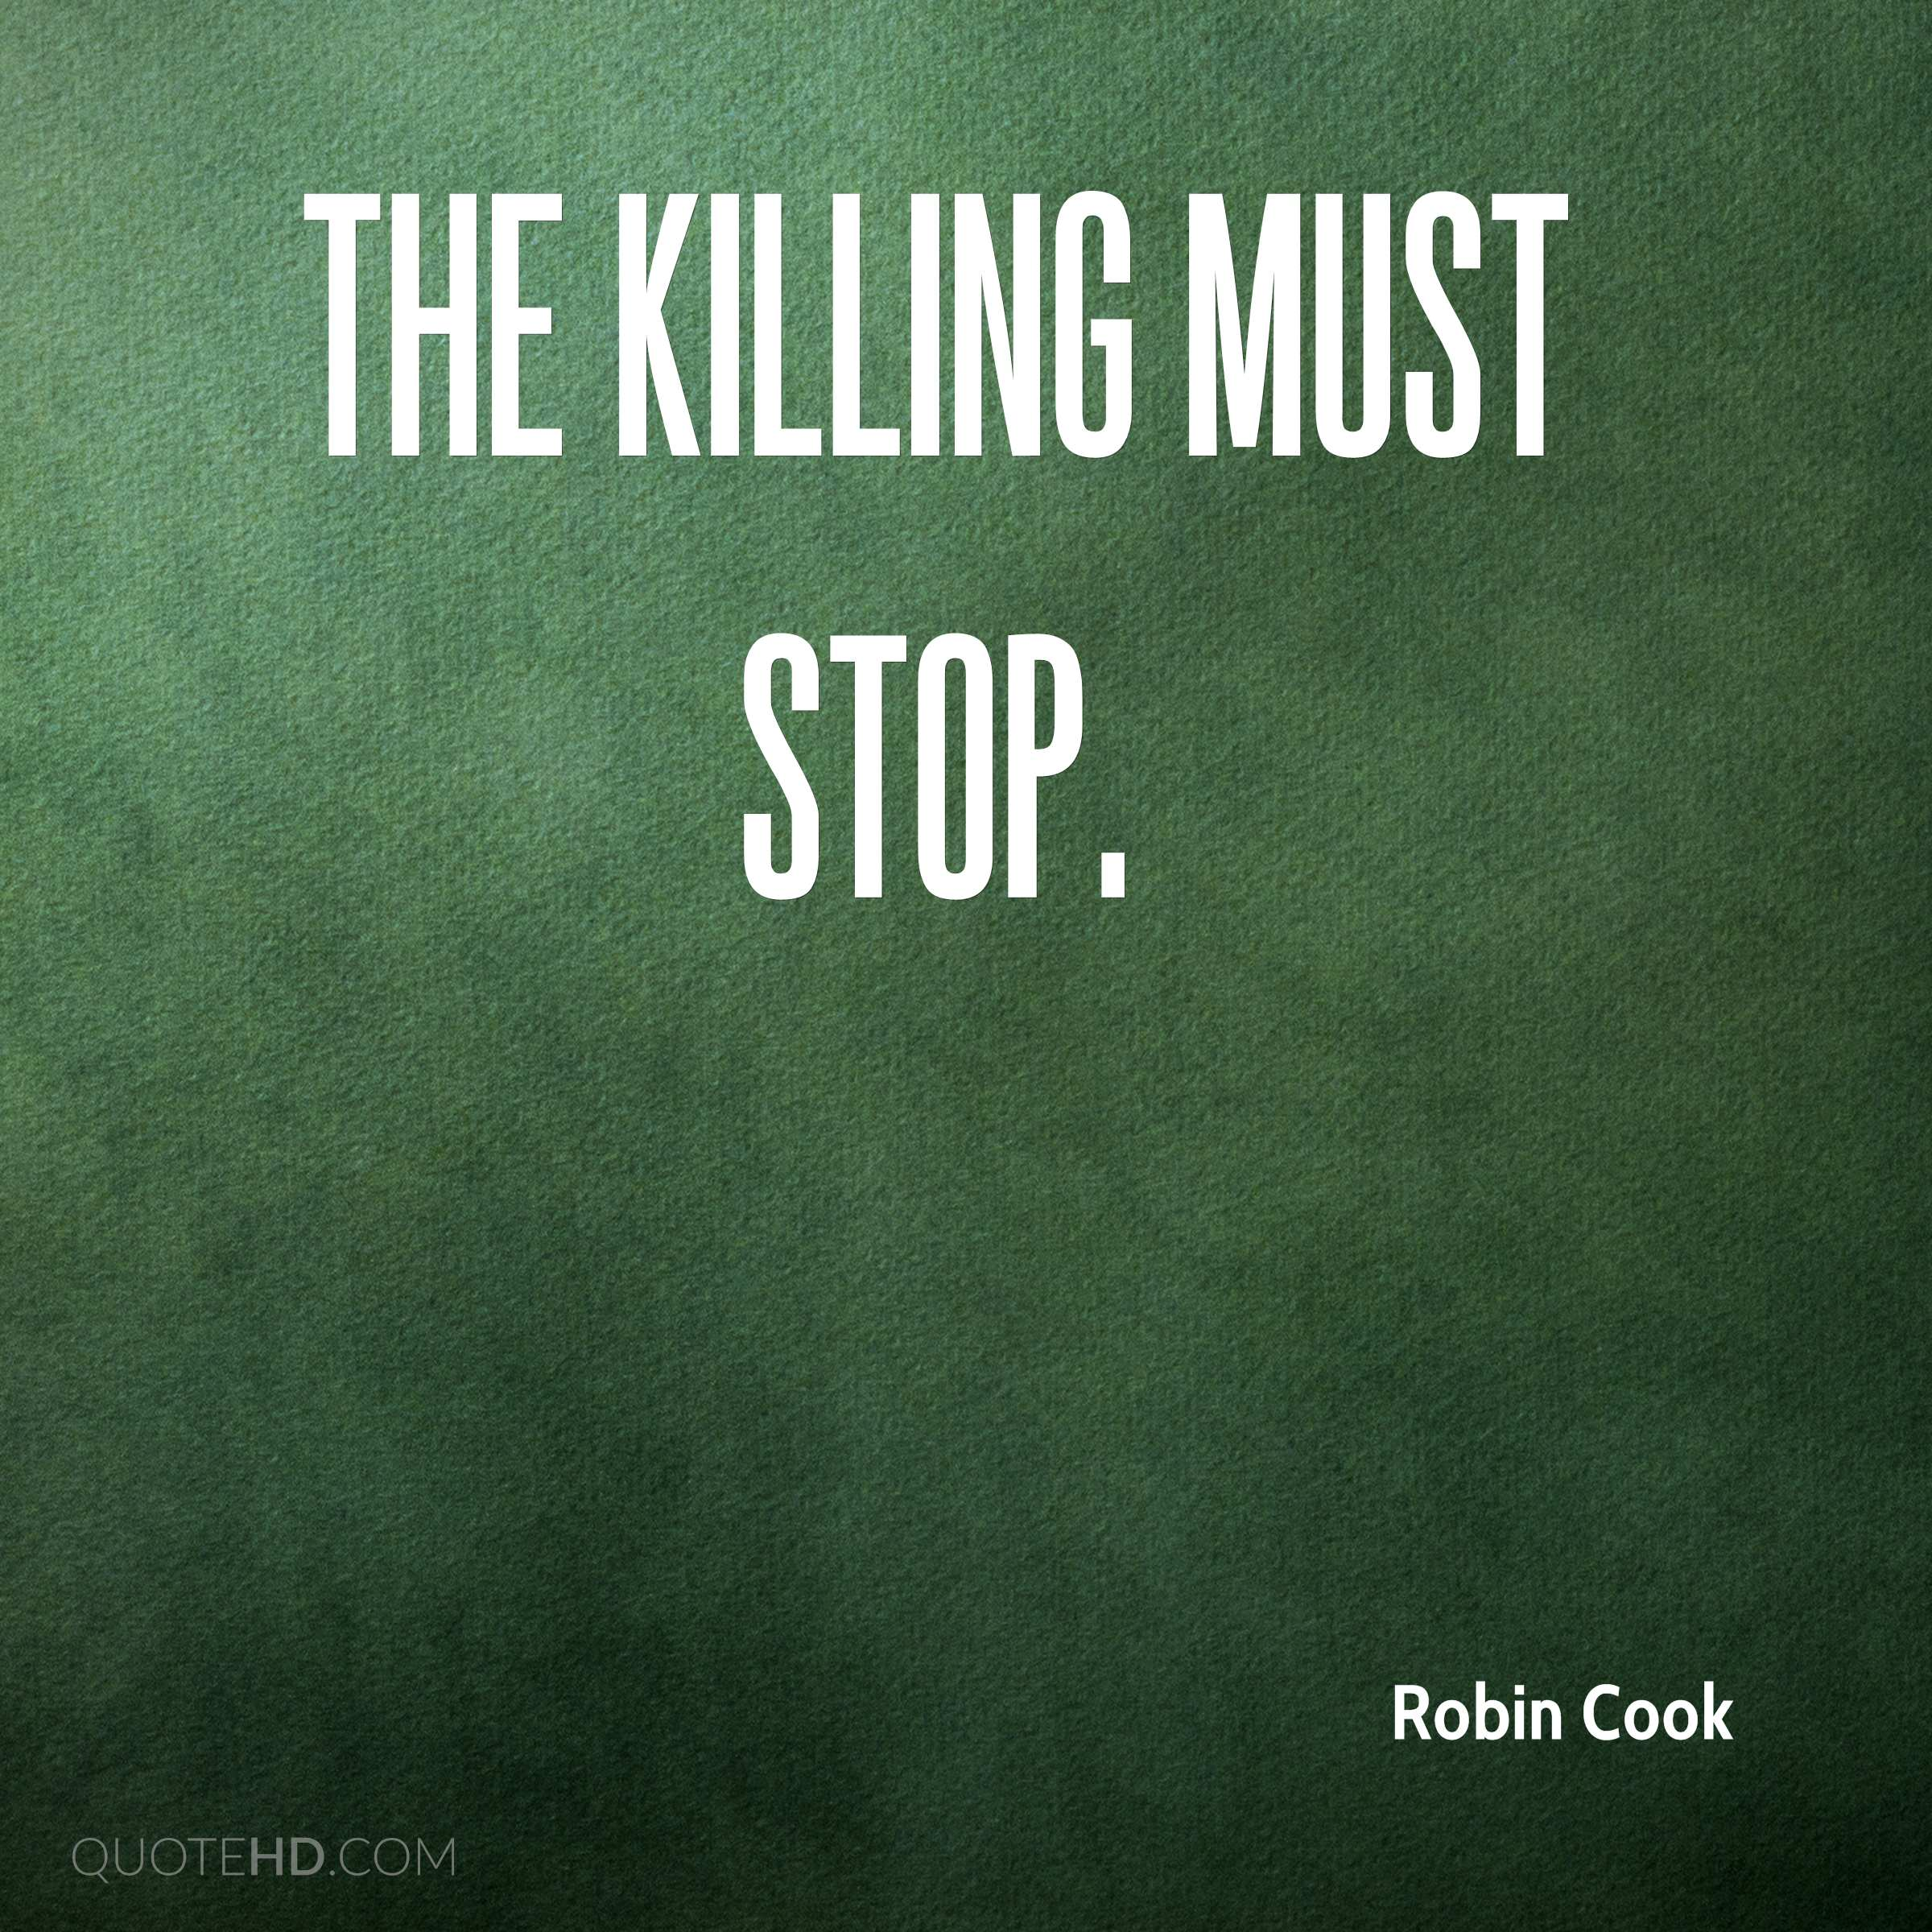 The killing must stop.